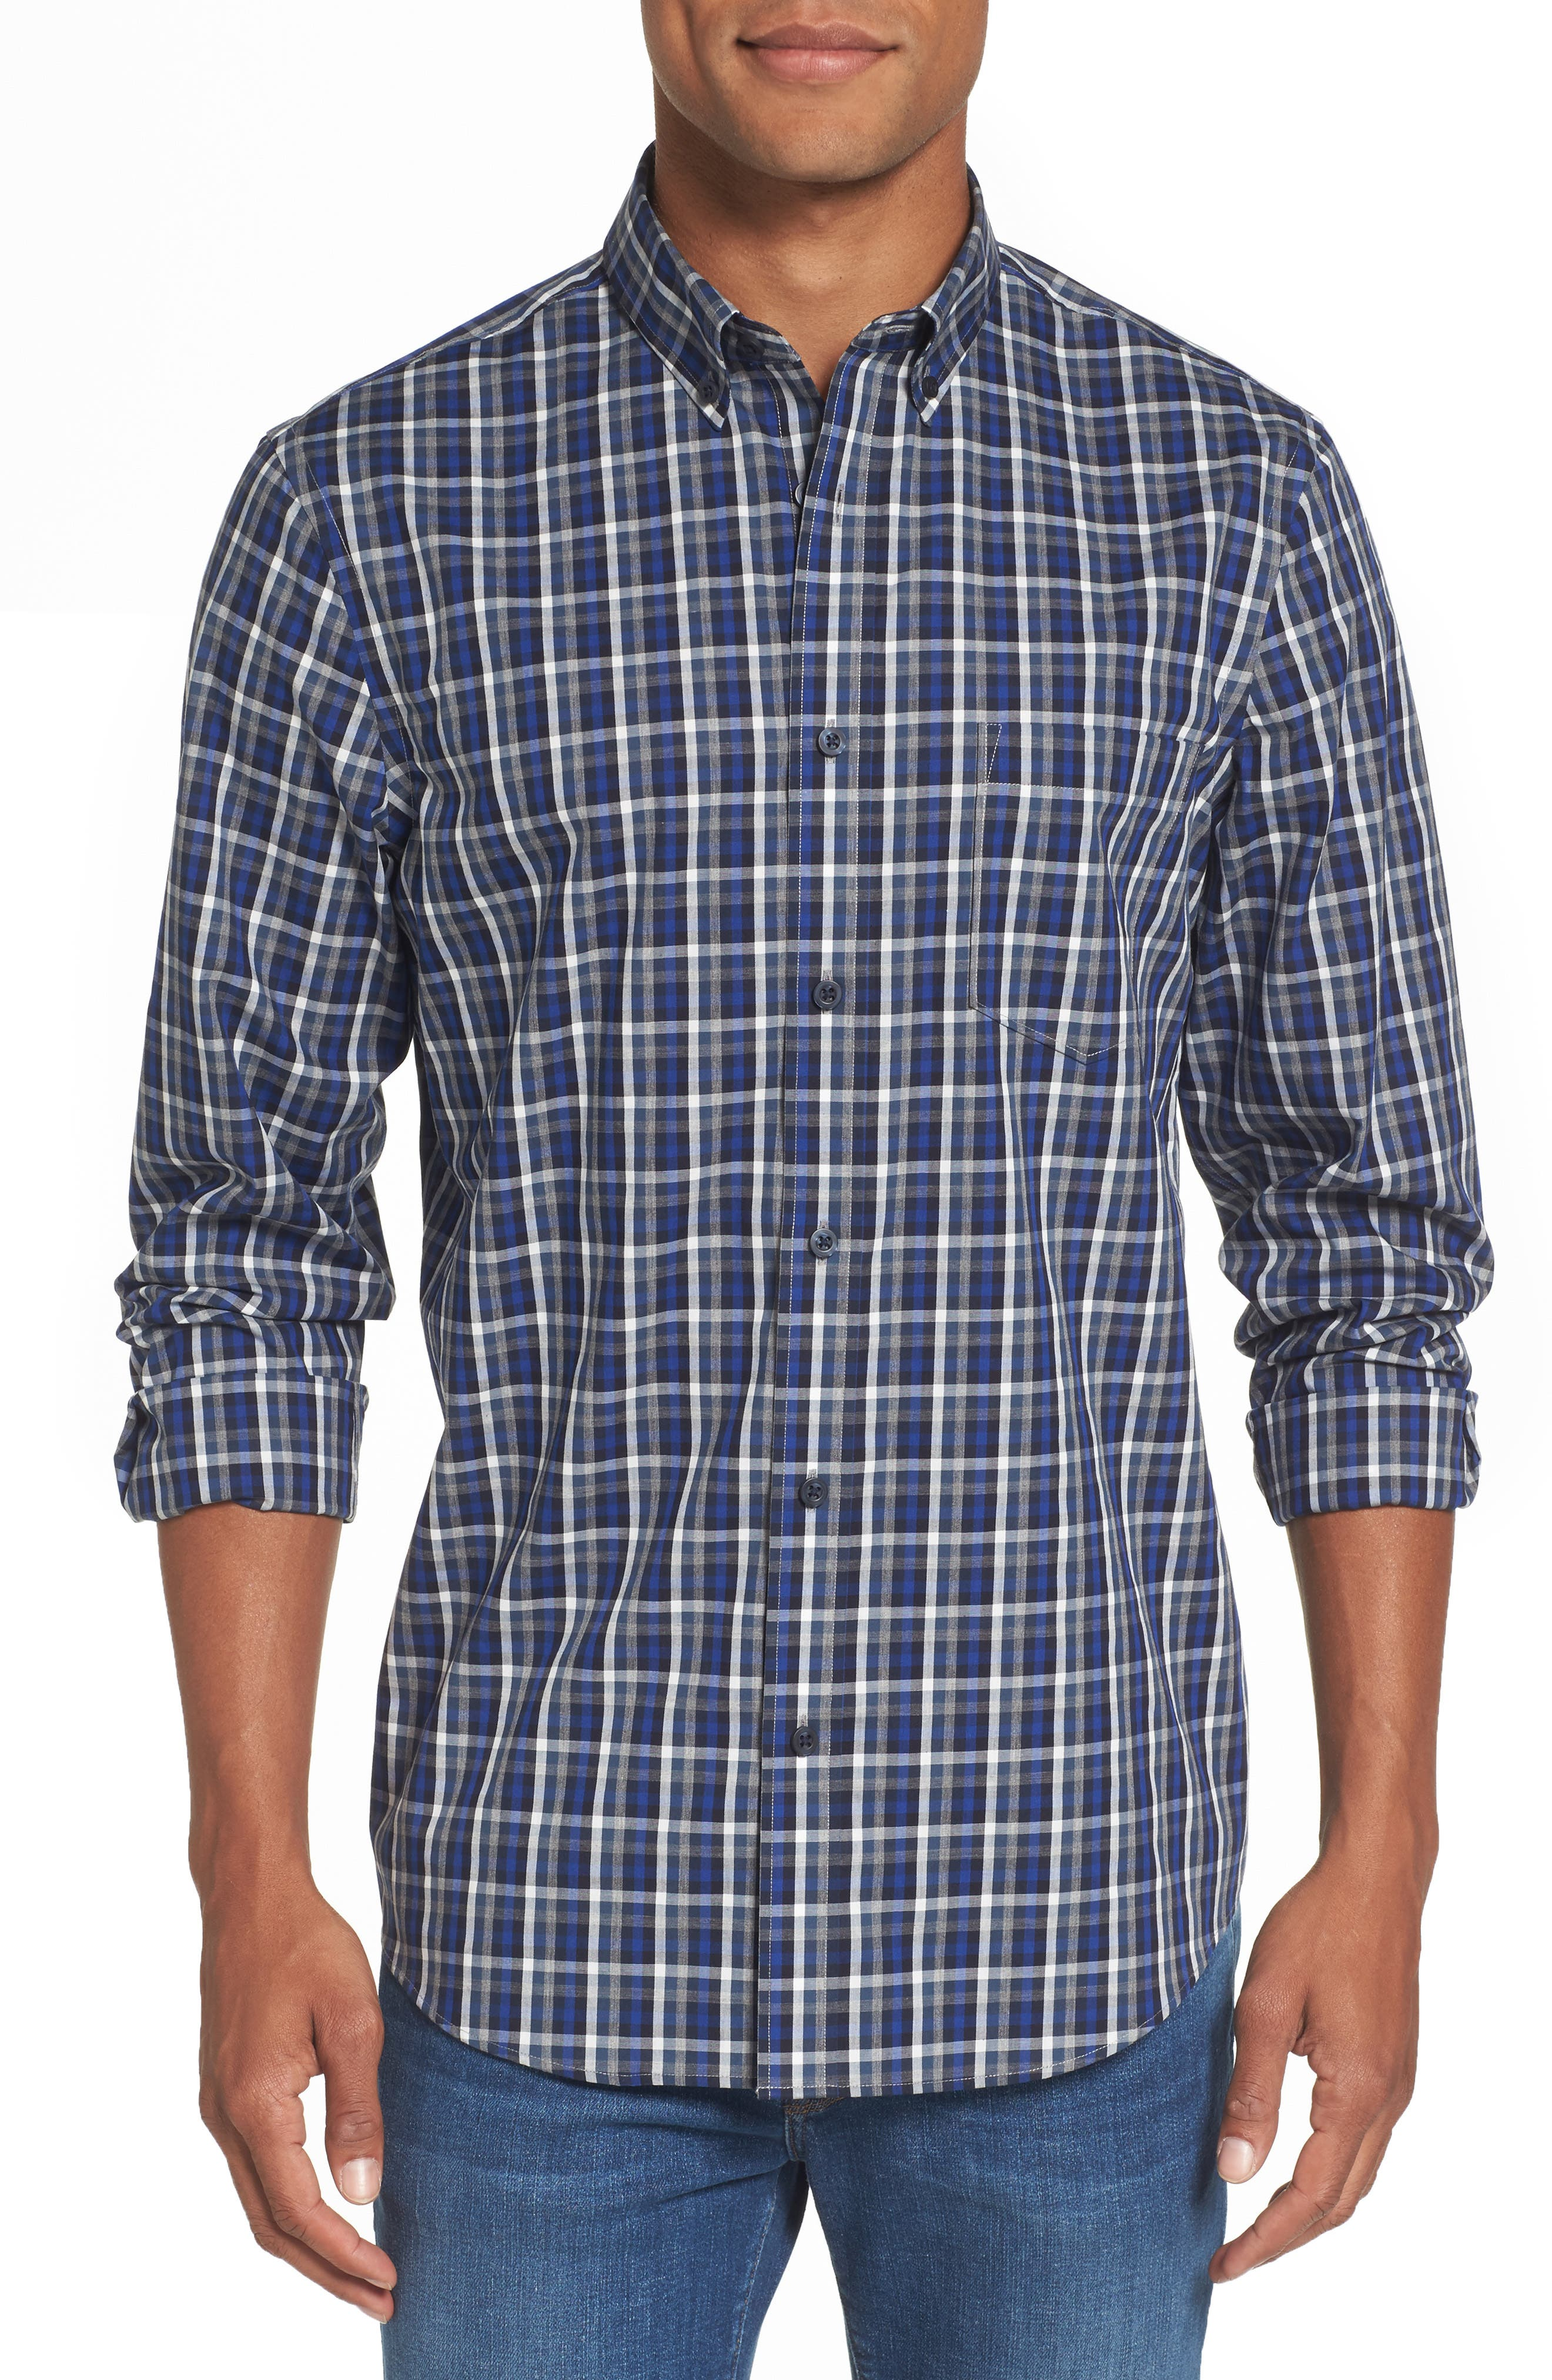 Regular Fit Non-Iron Spade Check Dress Shirt,                             Main thumbnail 1, color,                             Blue Estate Black Check